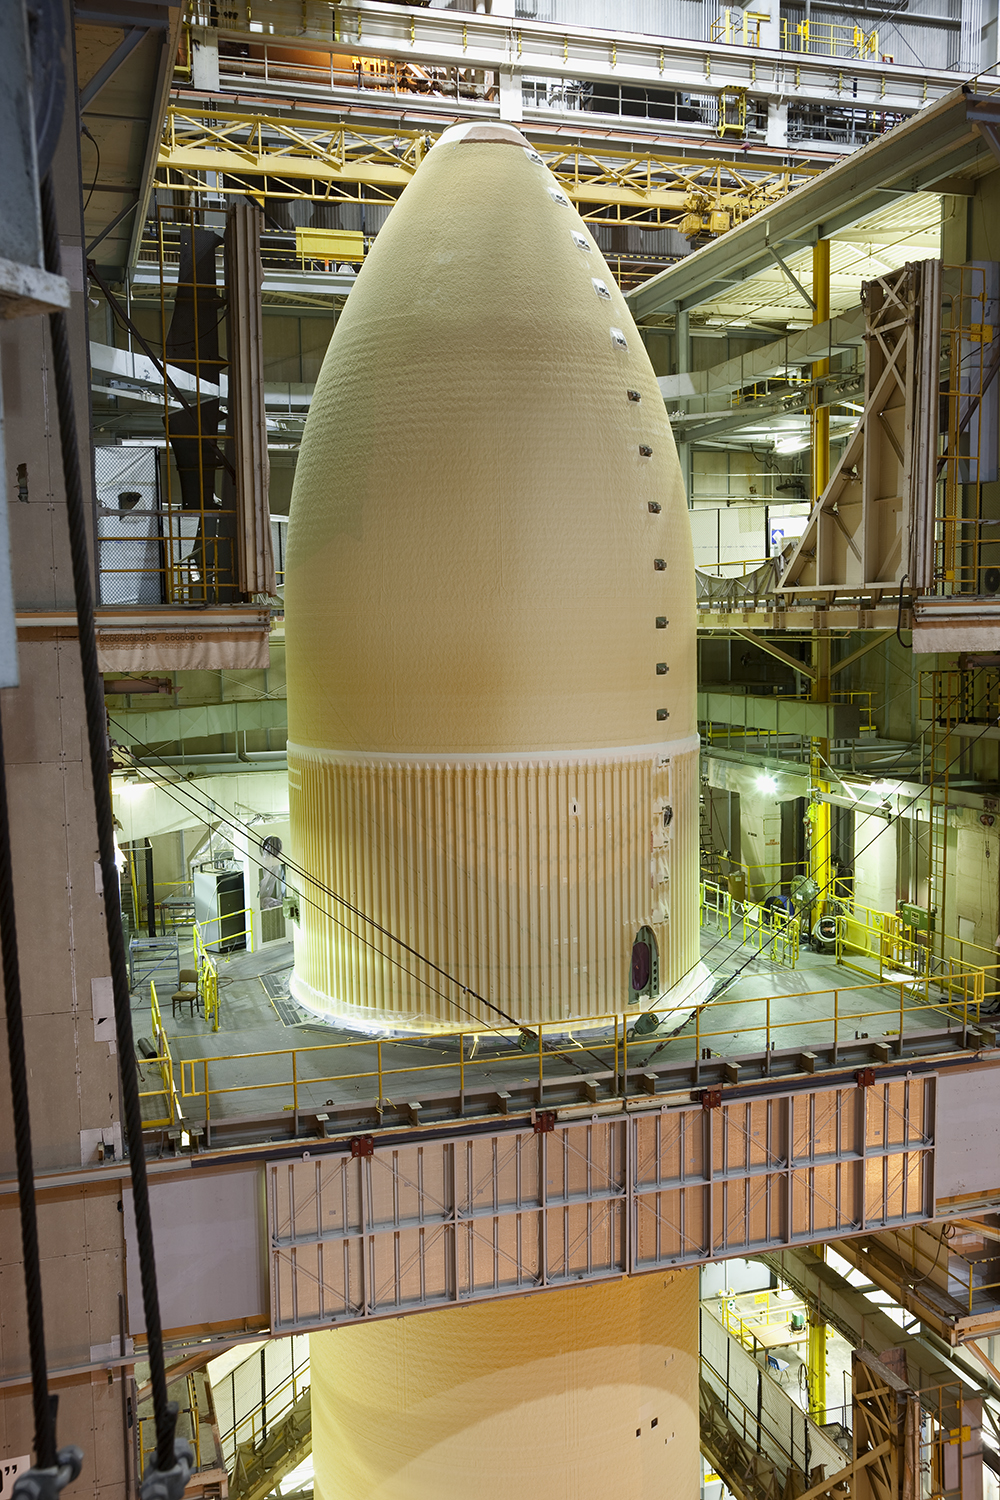 External Tank Foam Application, Michoud Assembly Facility, Louisiana